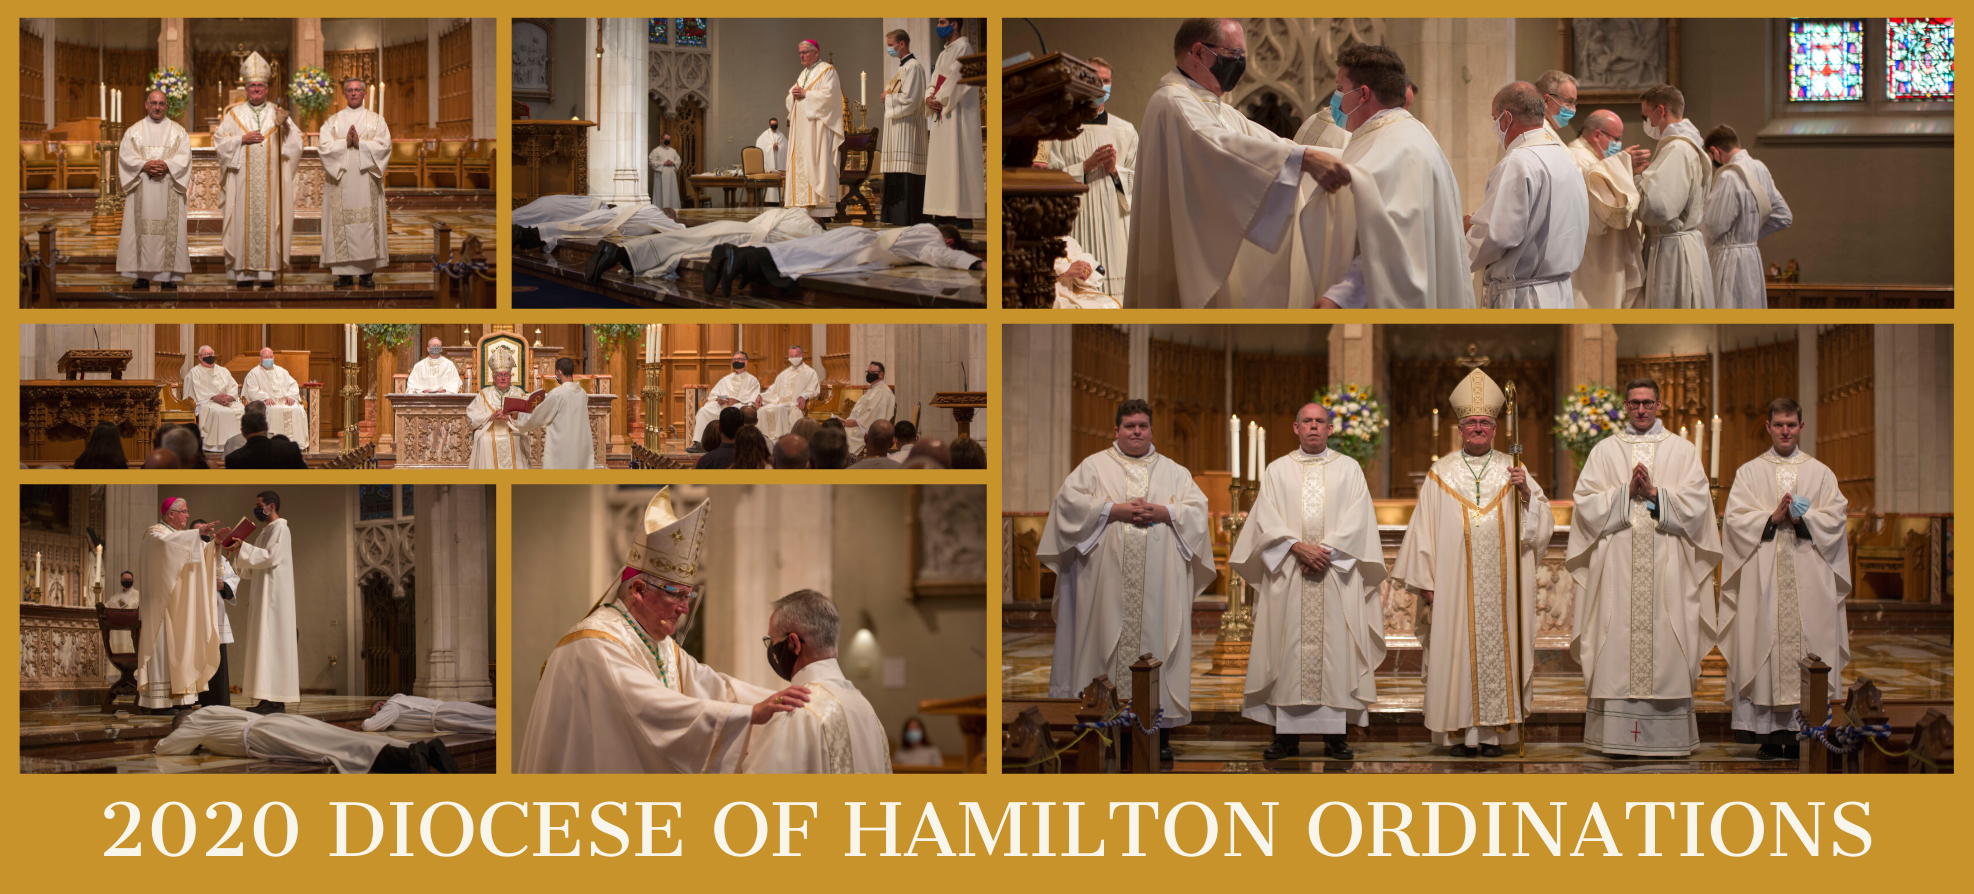 Highlights from the 2020 Diocese of Hamilton Ordinations